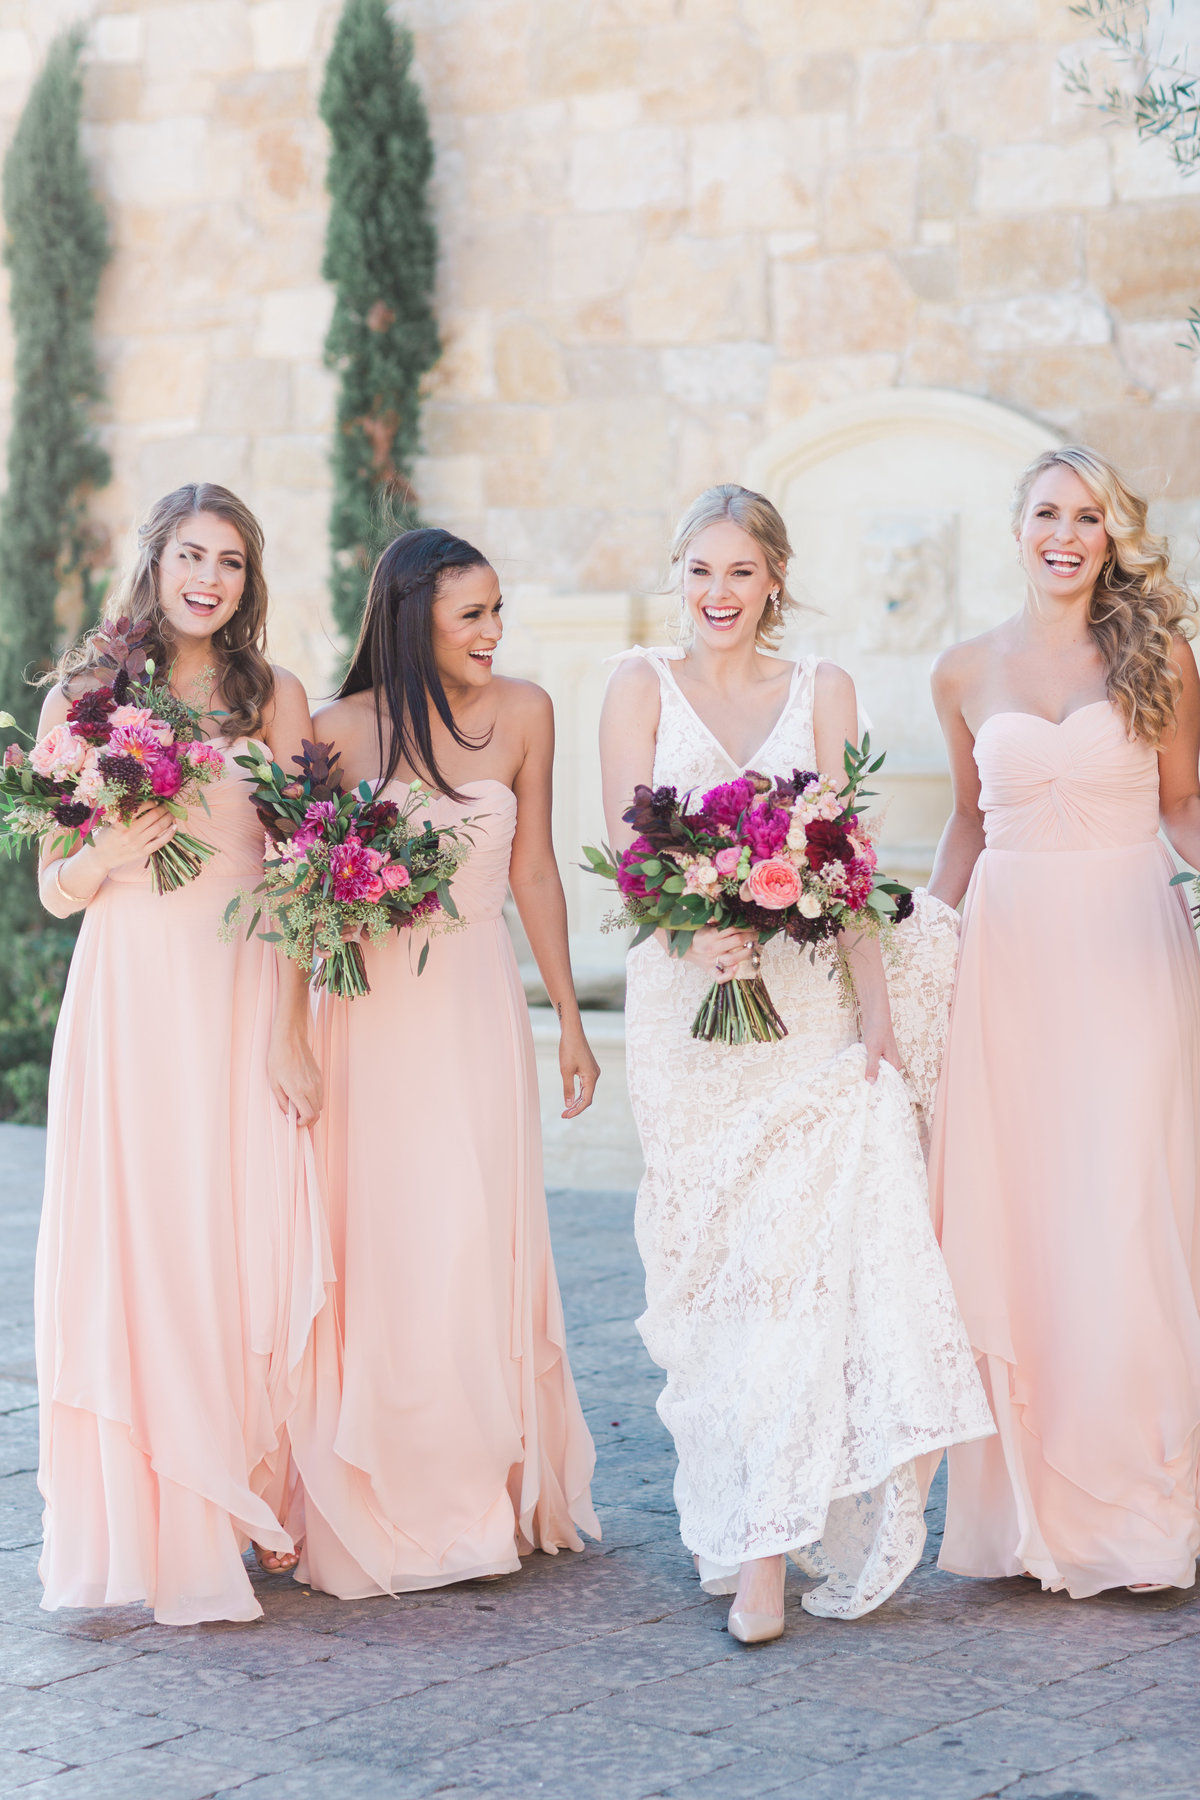 Malibu Rocky Oaks Wedding_Valorie Darling Photography_Bridesmaids